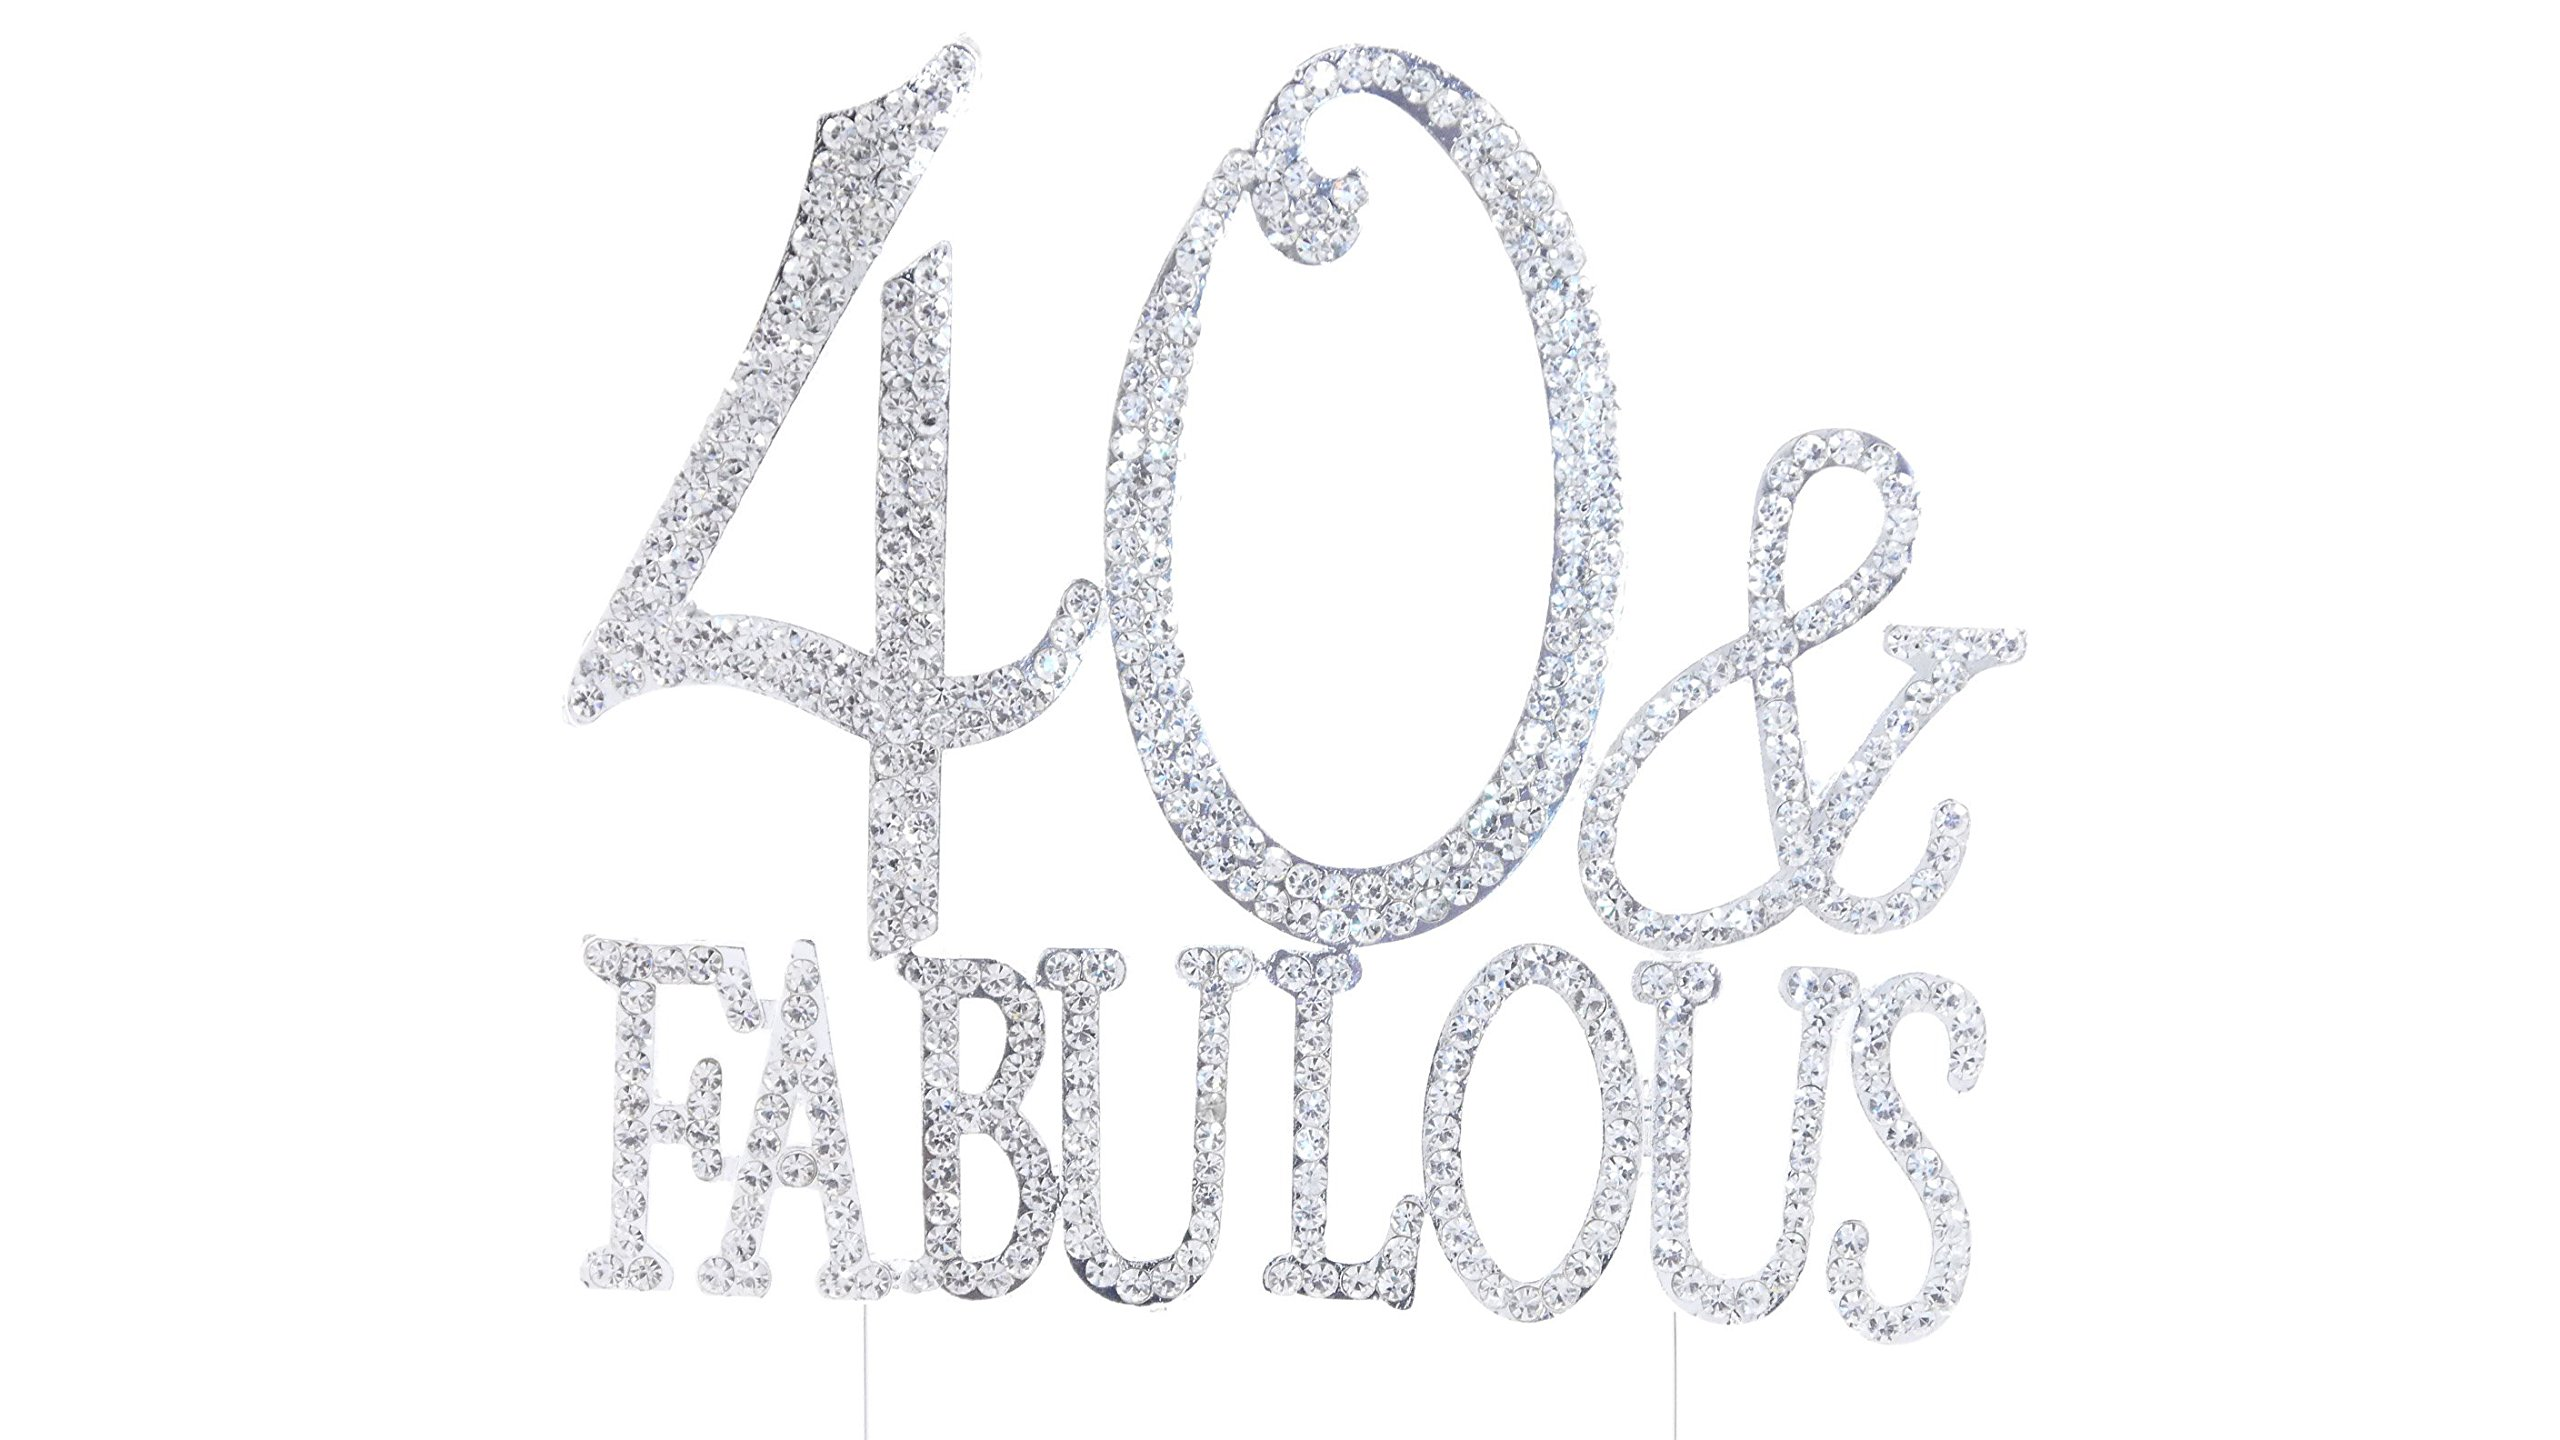 Number 40 Fabulous Silver Rhinestone Crystal Cake Topper Gold, Numbers, Letters for Wedding, Birthday, Anniversary, Party. Shine & Sparkles. RHINESTONE. BEST OFFER ON AMAZON (40 Fabulous Silver)